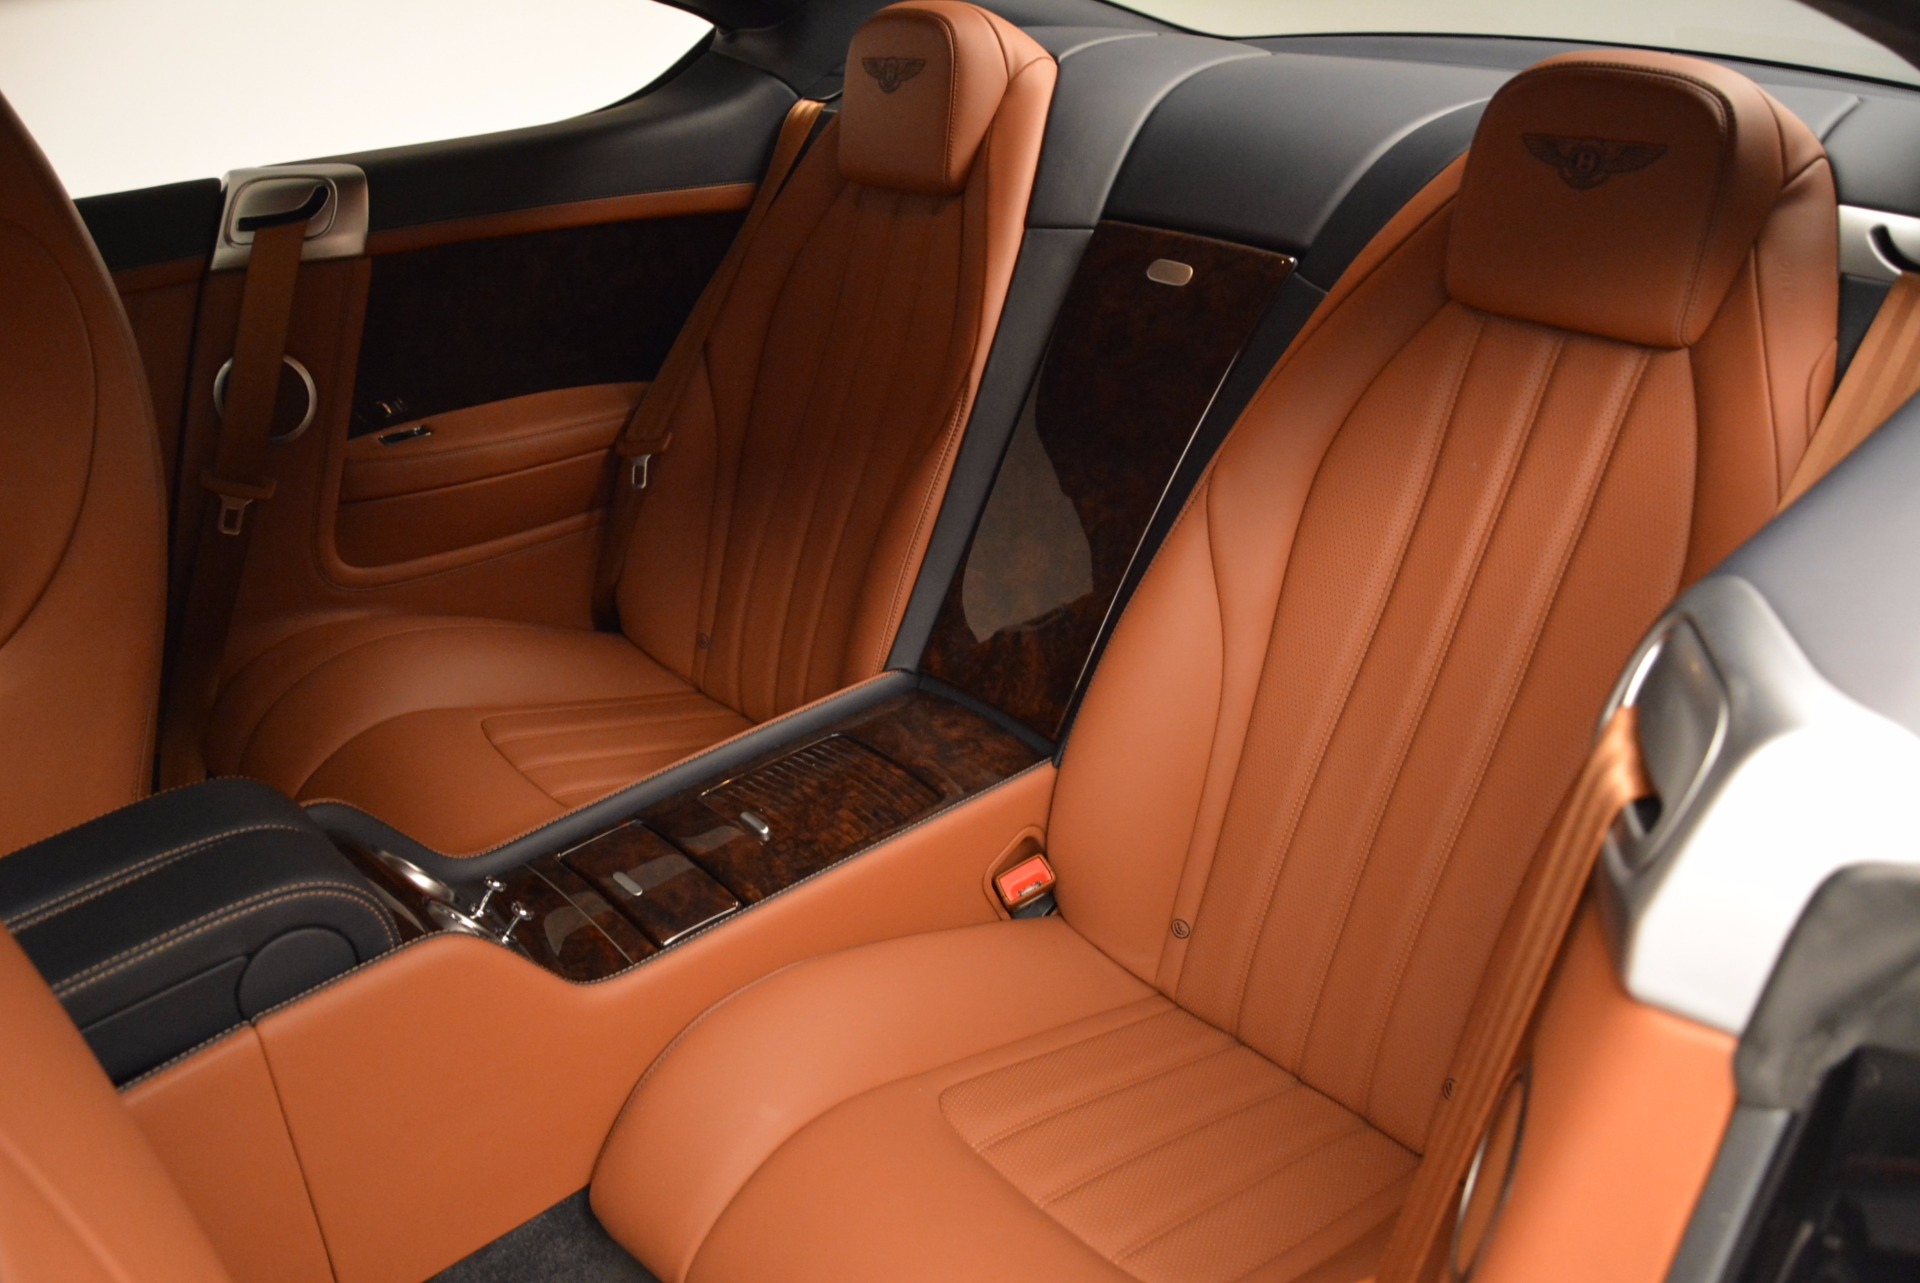 Used 2014 Bentley Continental GT W12 For Sale In Westport, CT 1845_p27